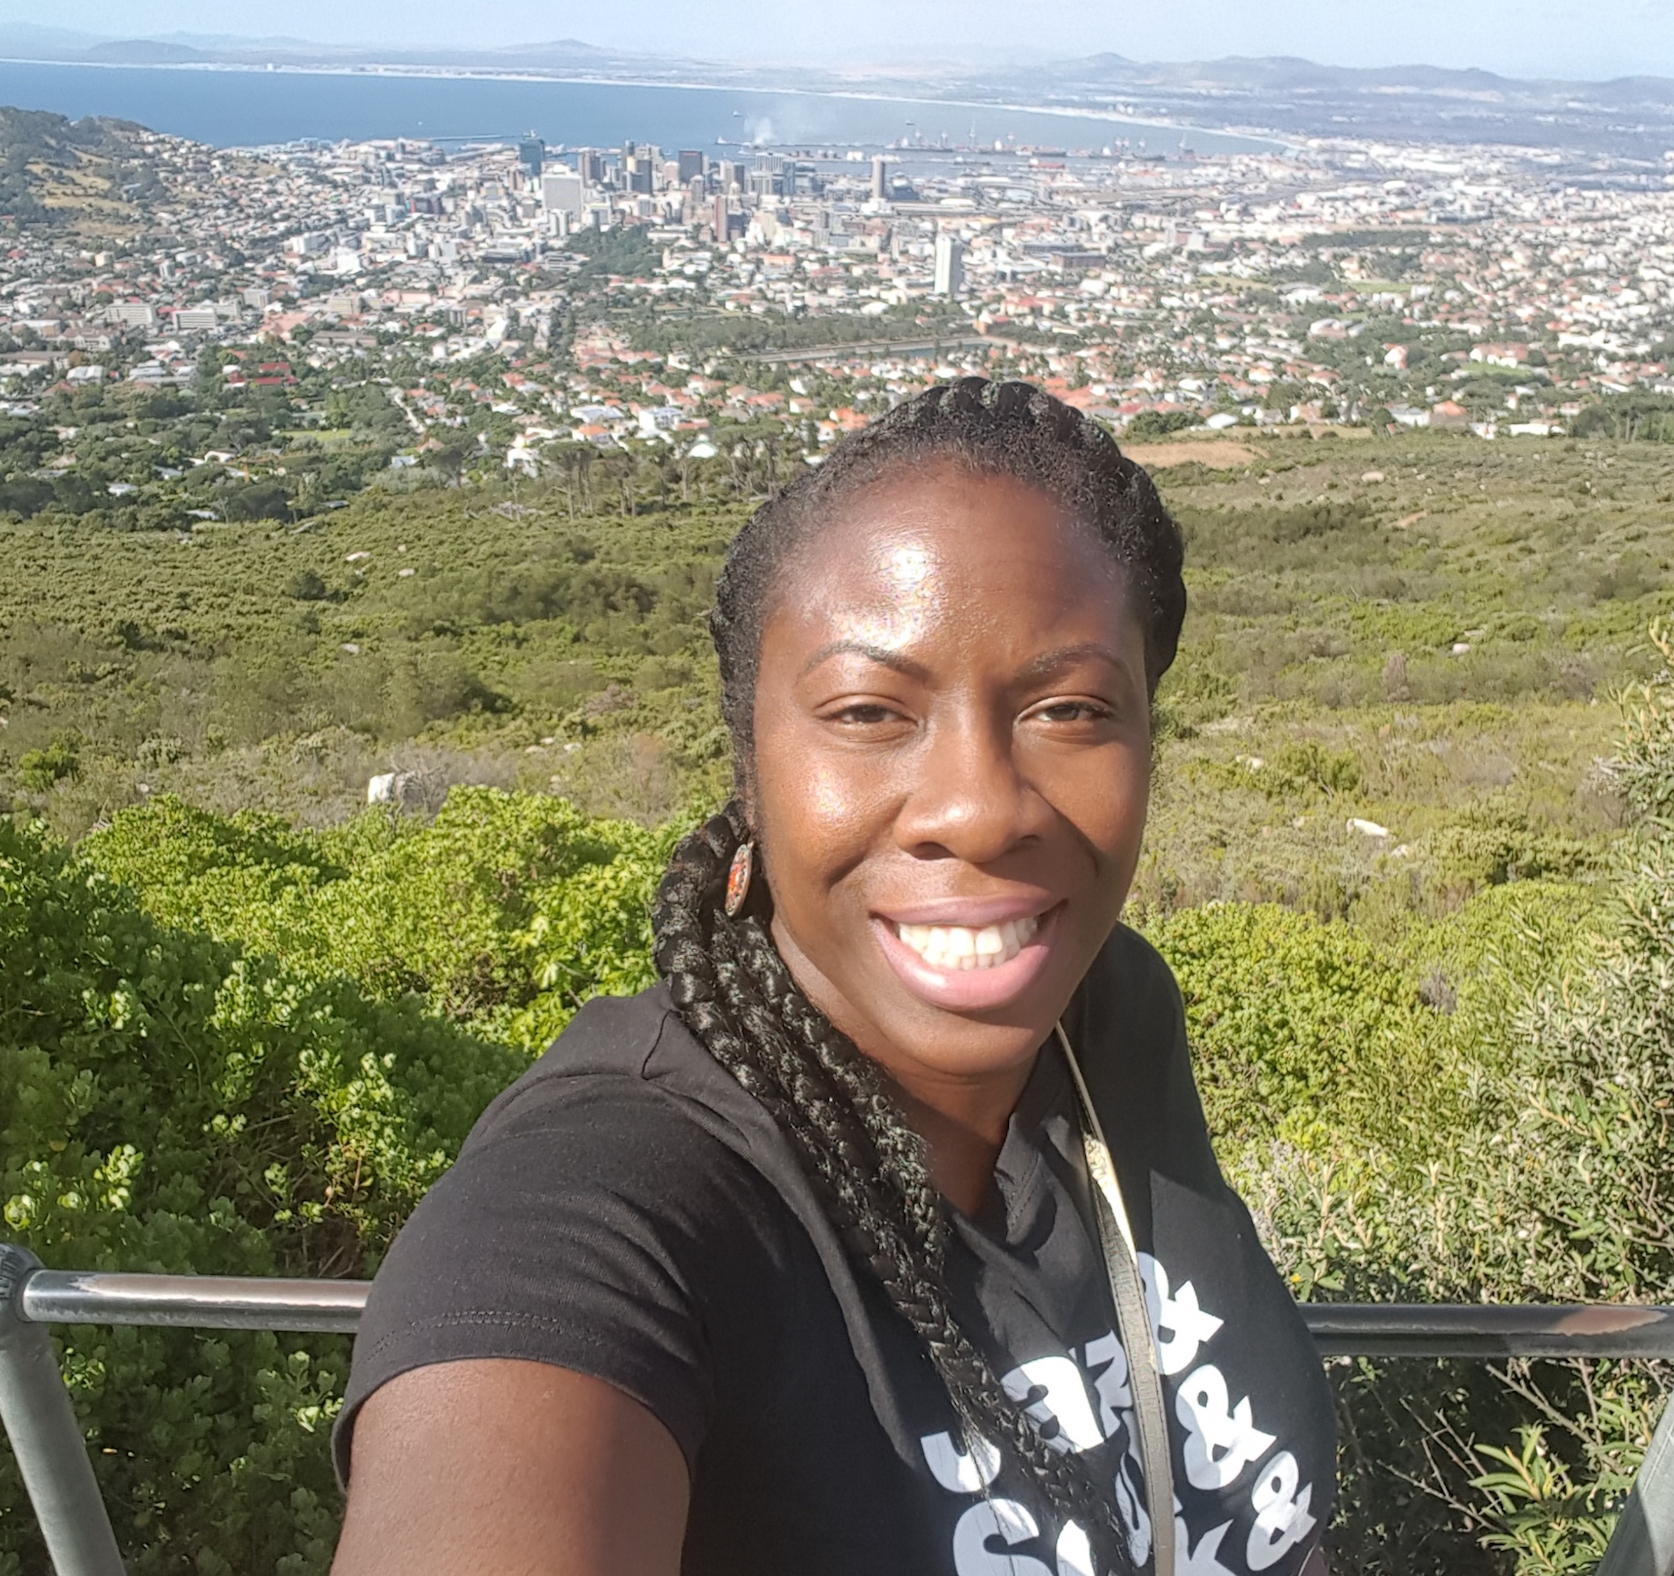 Jumoke visits Table Mountain in Cape Town, South Africa